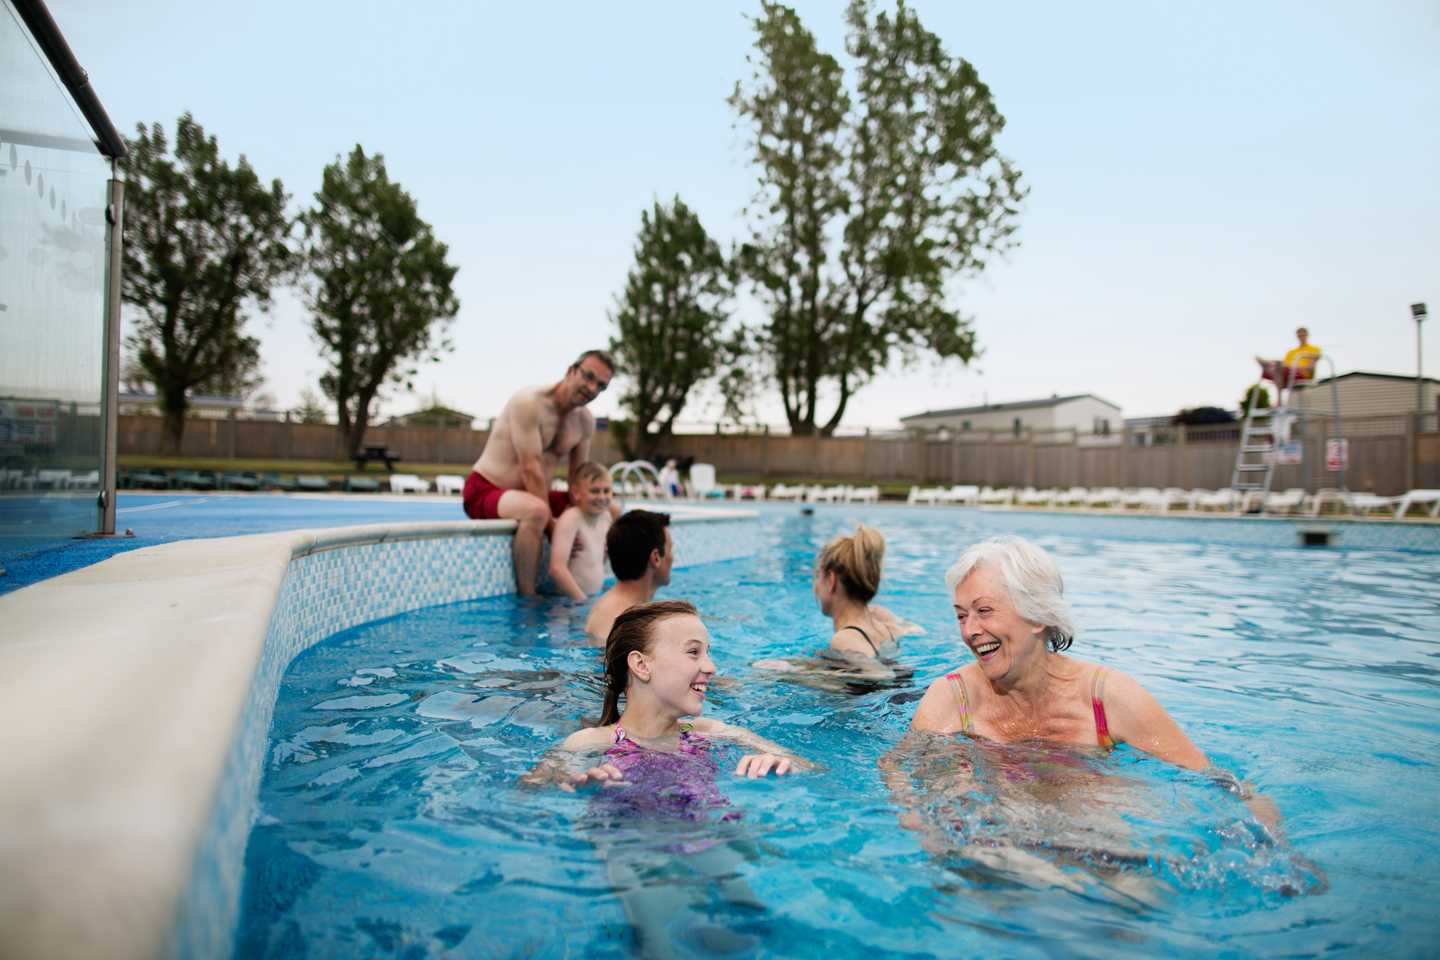 Guests in the outdoor pool at Hopton